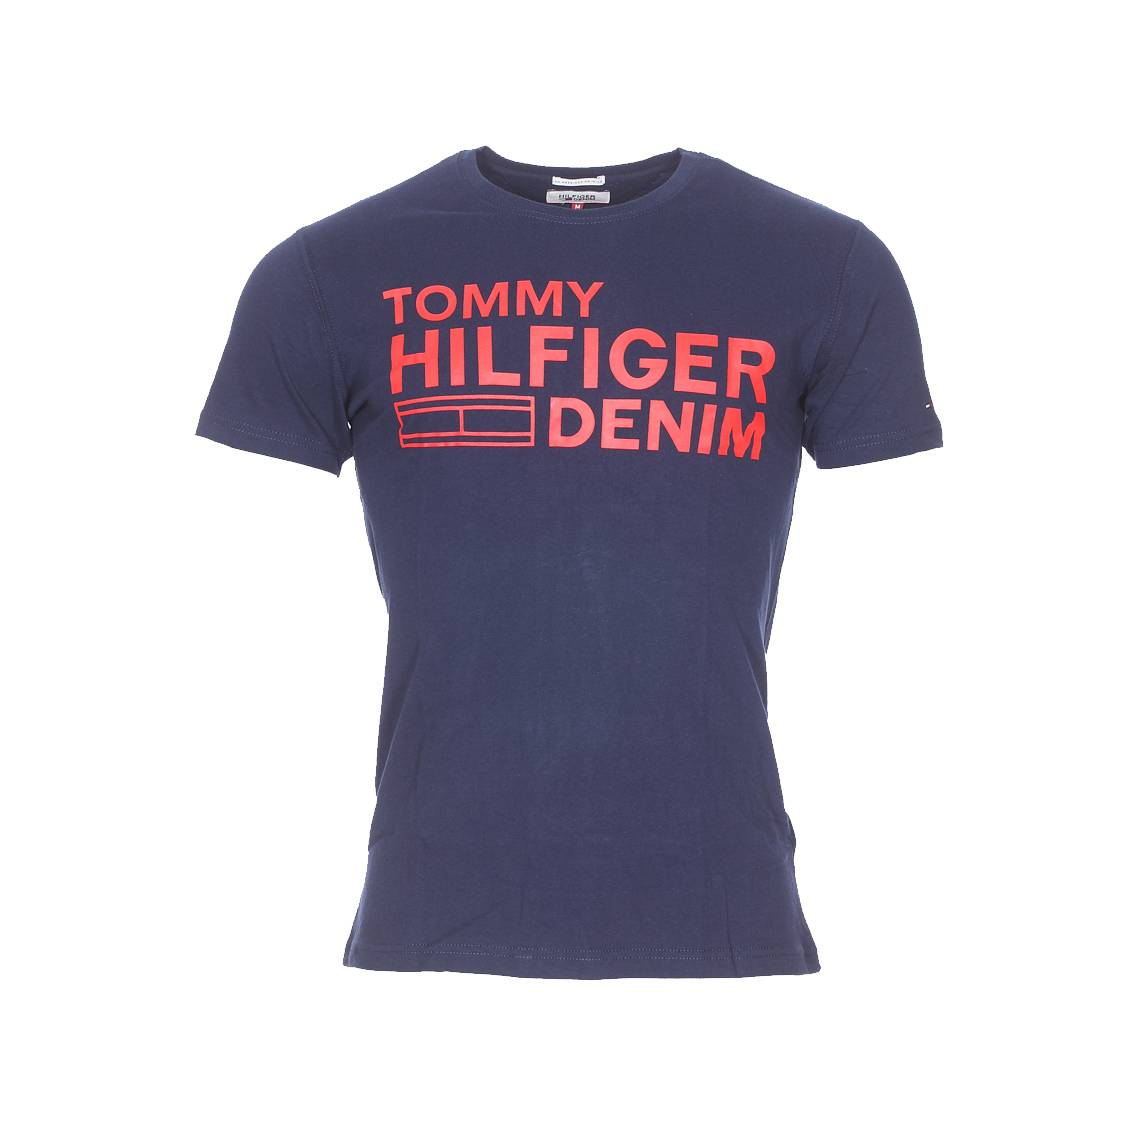 tee shirt hilfiger denim bleu marine floqu en rouge rue. Black Bedroom Furniture Sets. Home Design Ideas